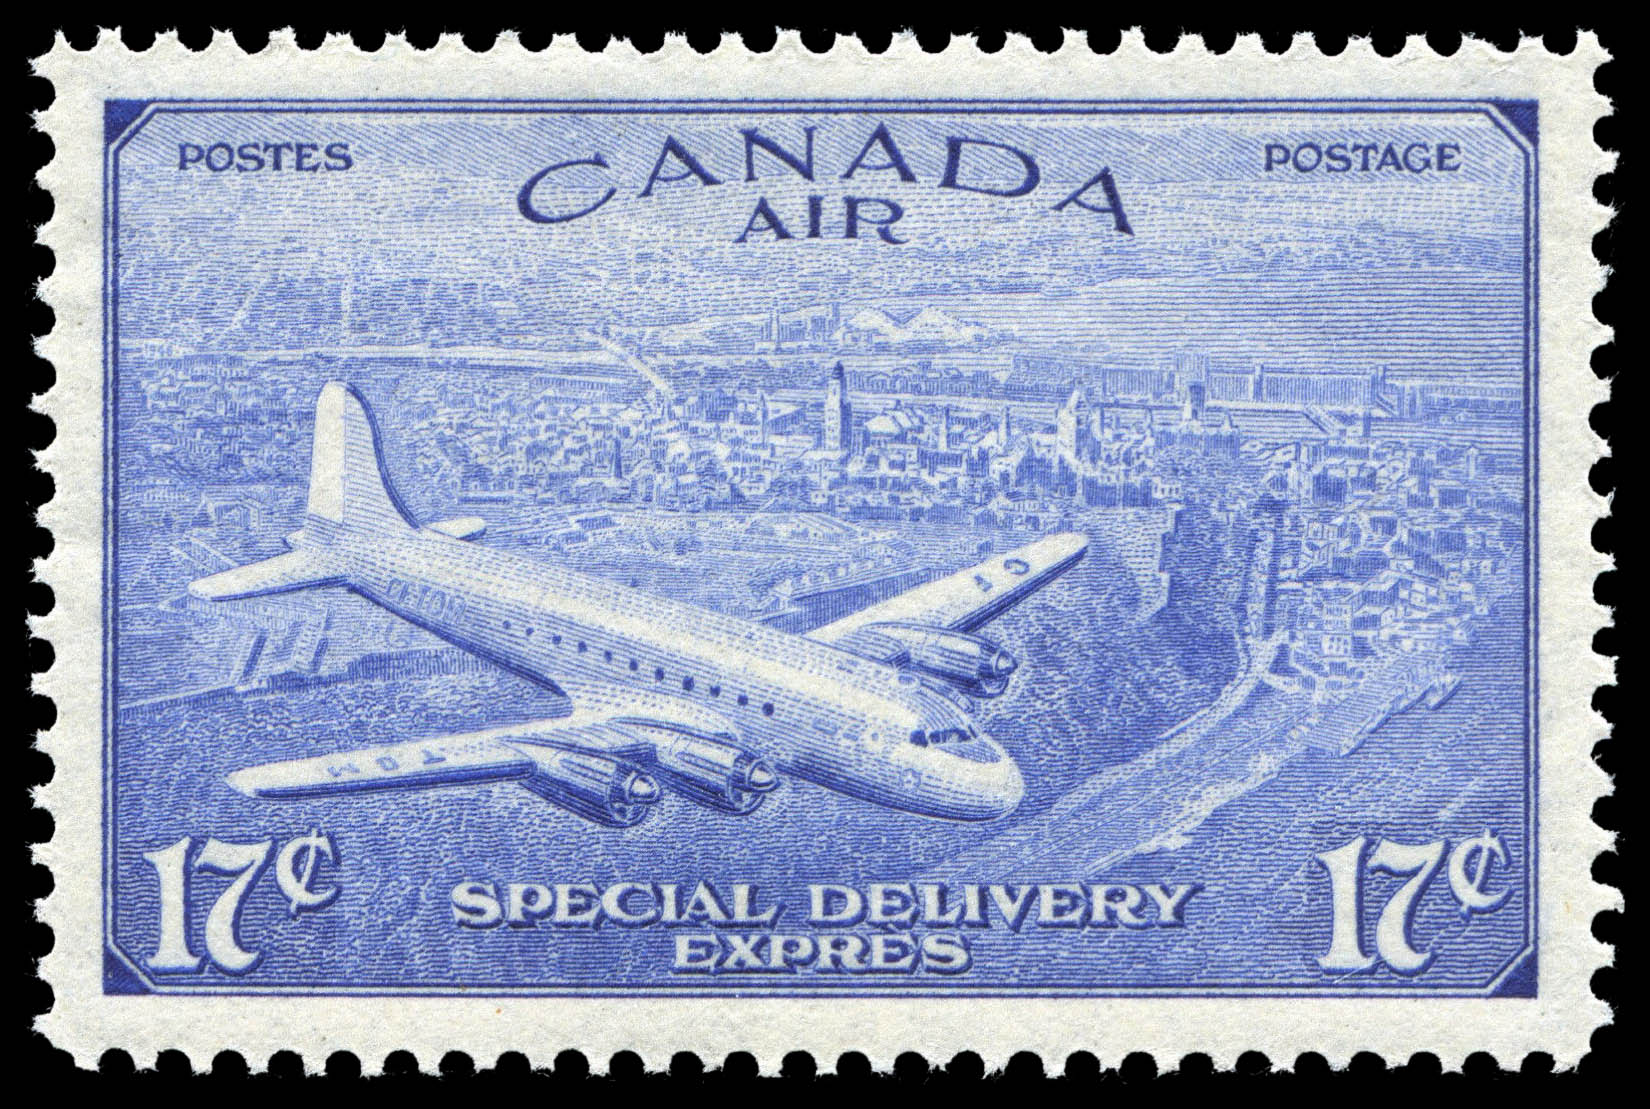 Mail Plane over Quebec, Air, Special Delivery Canada Postage Stamp